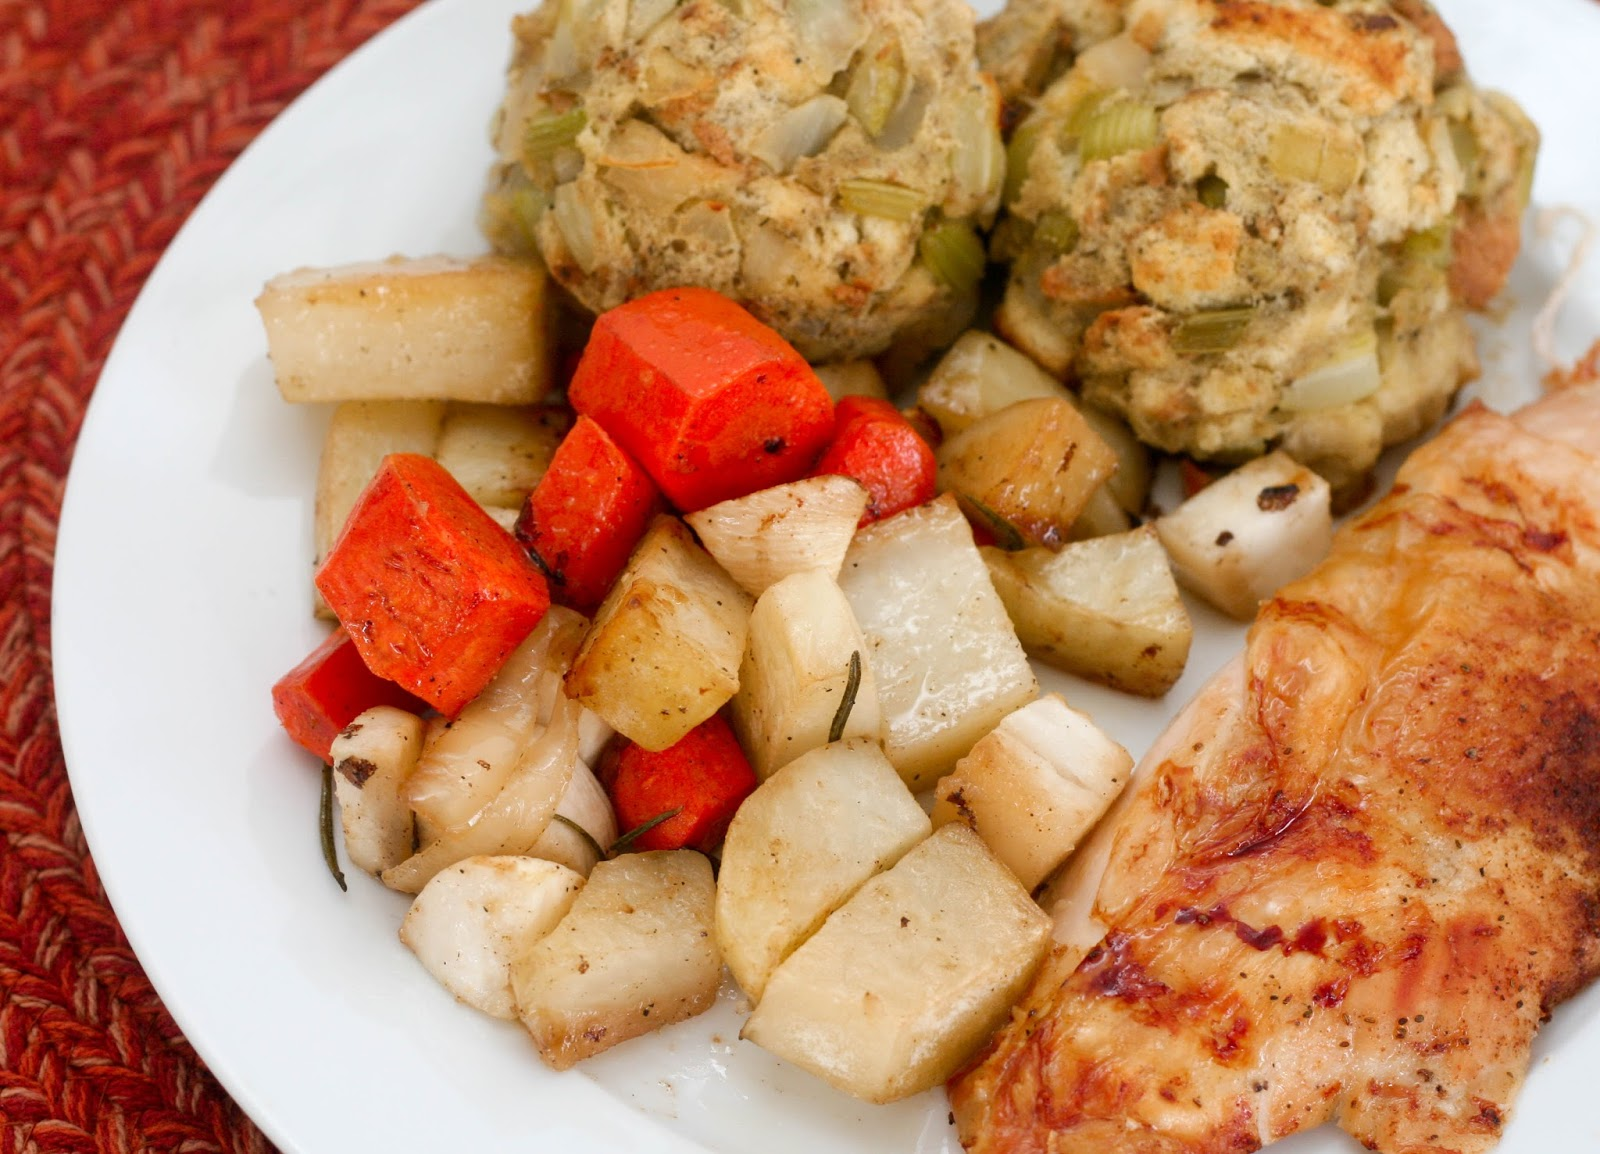 2 Hour Sheet Pan Thanksgiving for Two or Four: Old Bay Turkey Breast, Roasted Root Vegetables and Herbed Stuffing